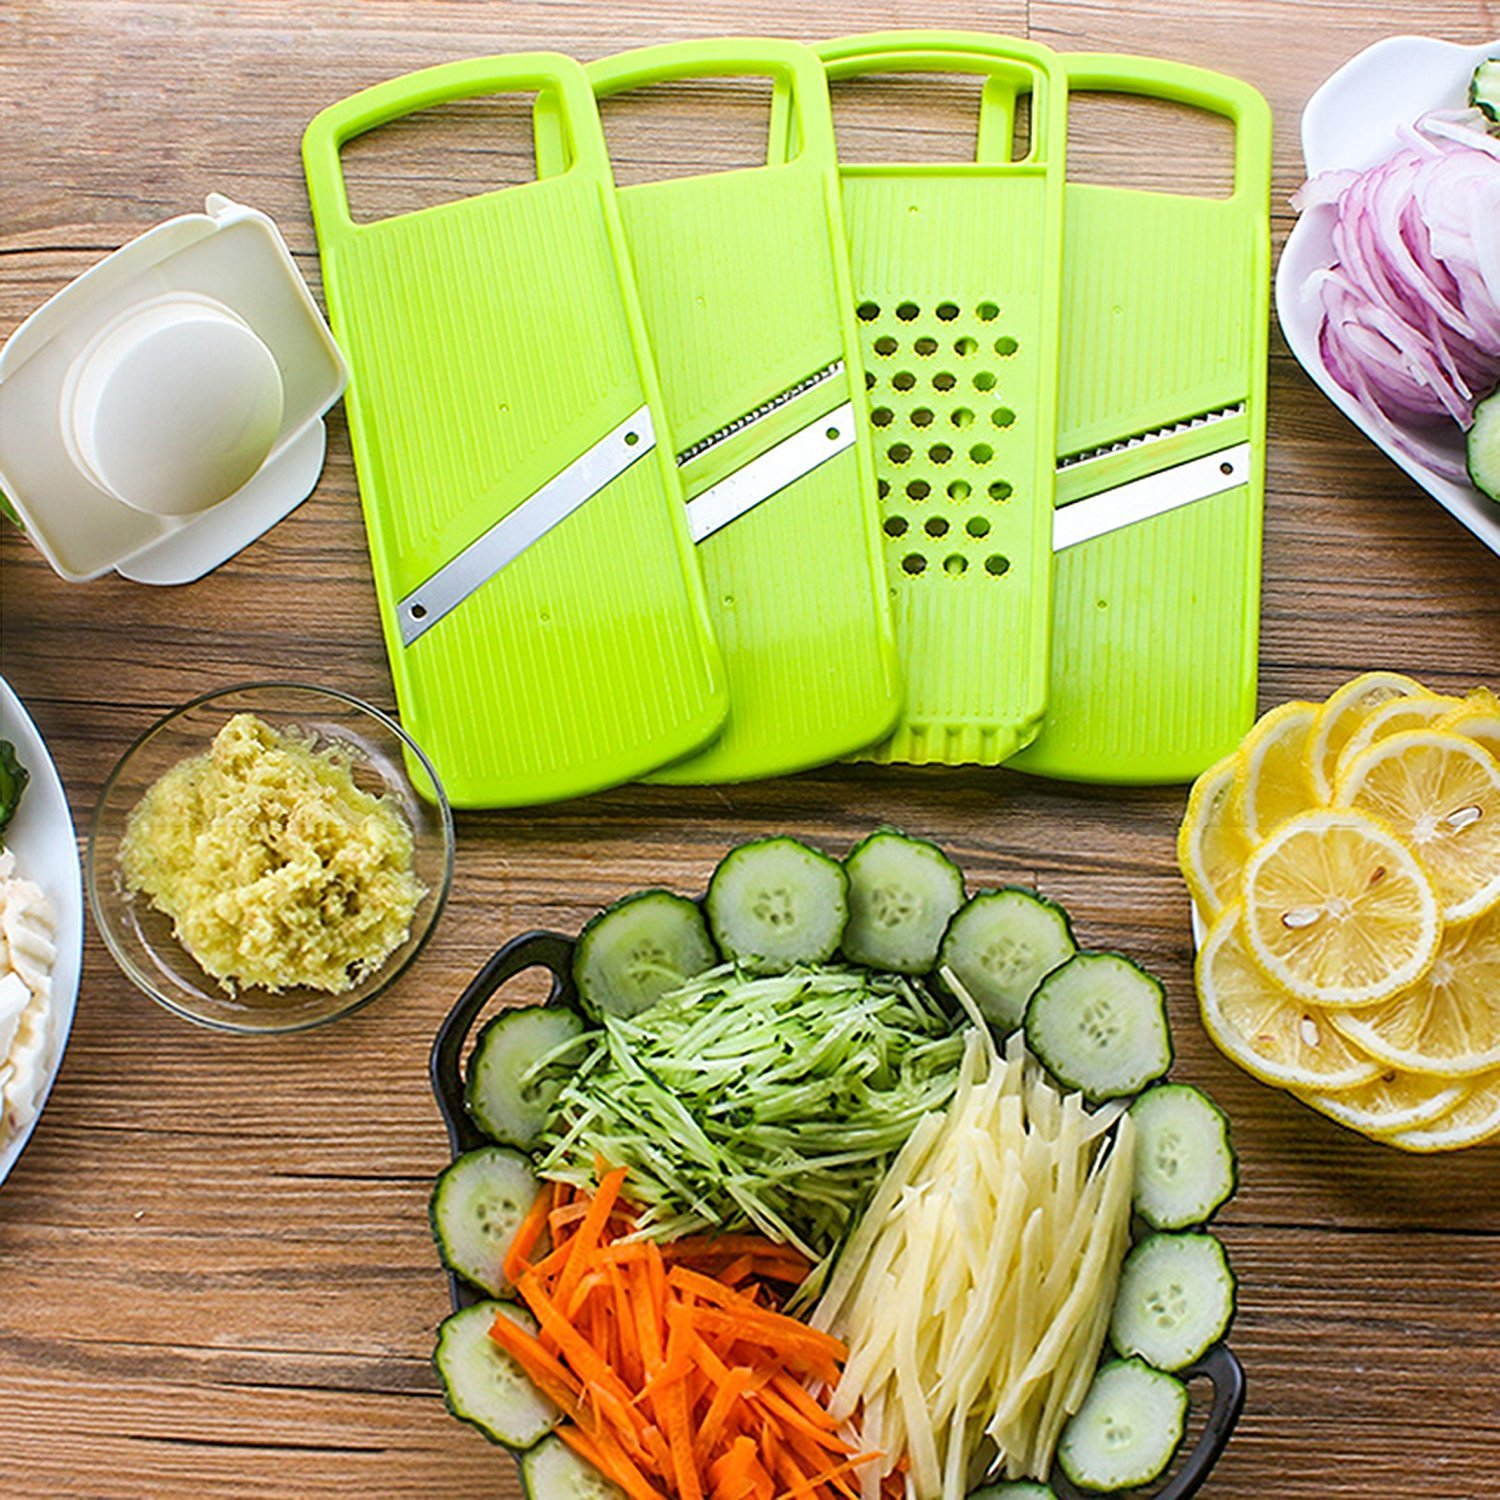 Mandoline Slicer Spiralizer Vegetable Cutter Grater Chopper Julienne Slicer-4 Interchangeable Stainless Steel Blades with Hand Protector, Food Storage Container - For Cucumber, carrot, potato etc